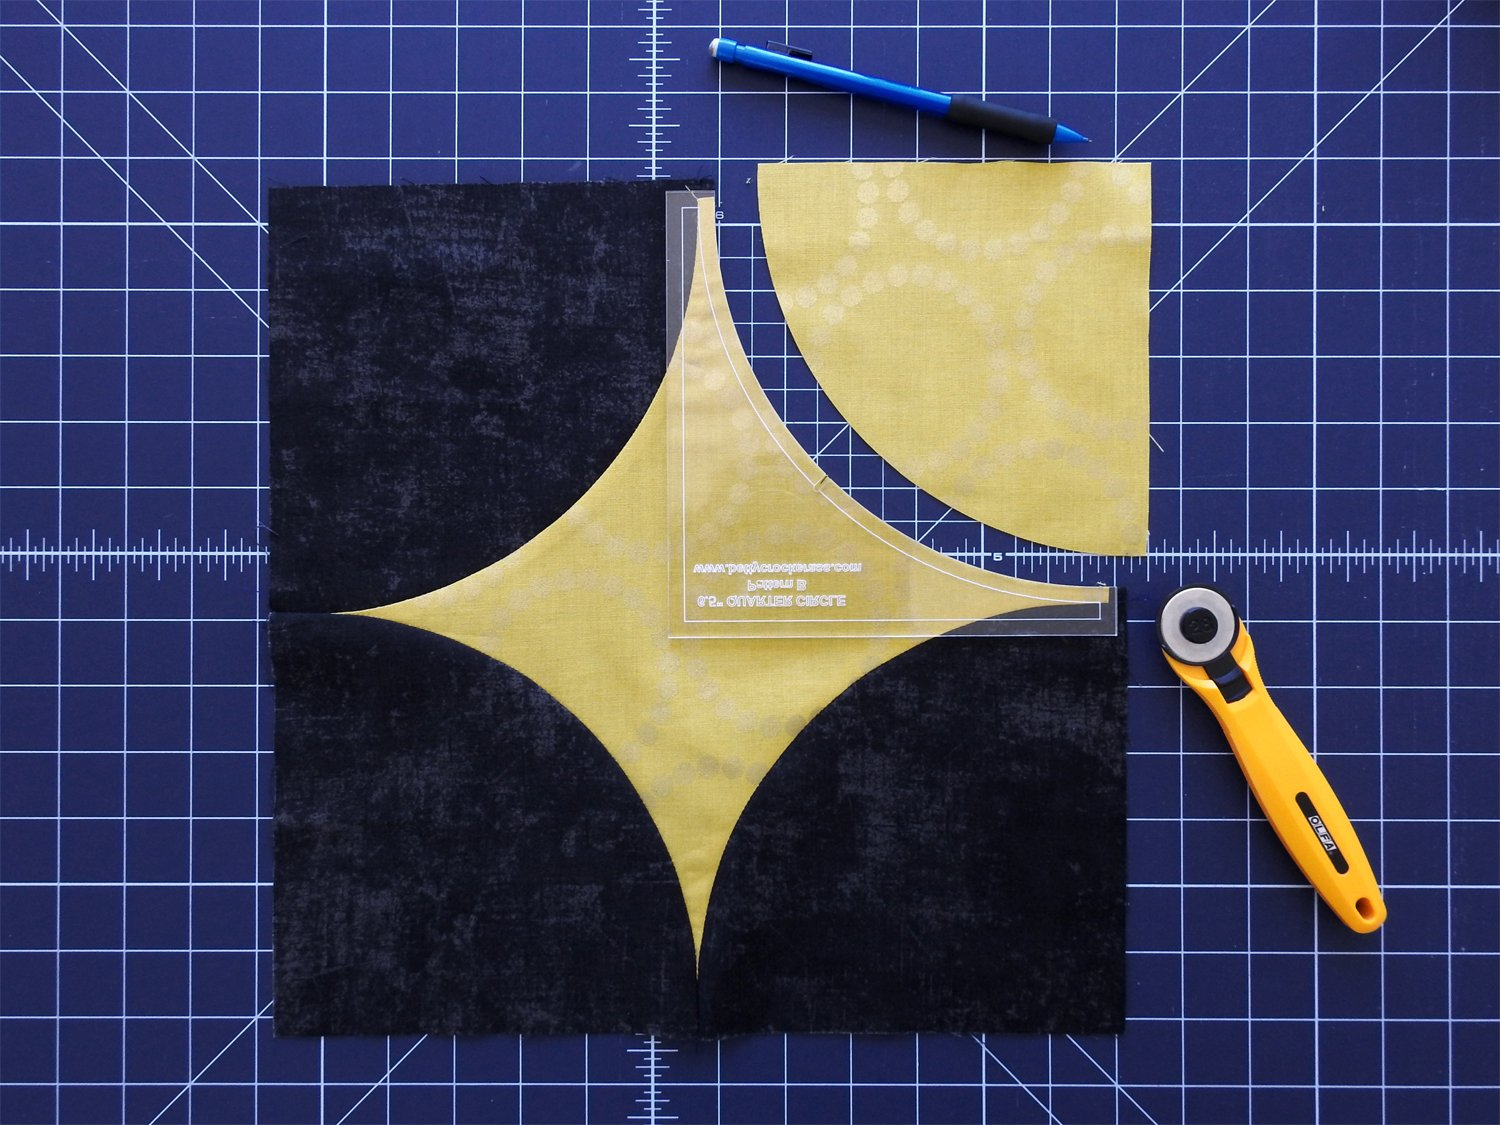 Cut and Prepare Fourth Curve in Star Fabric